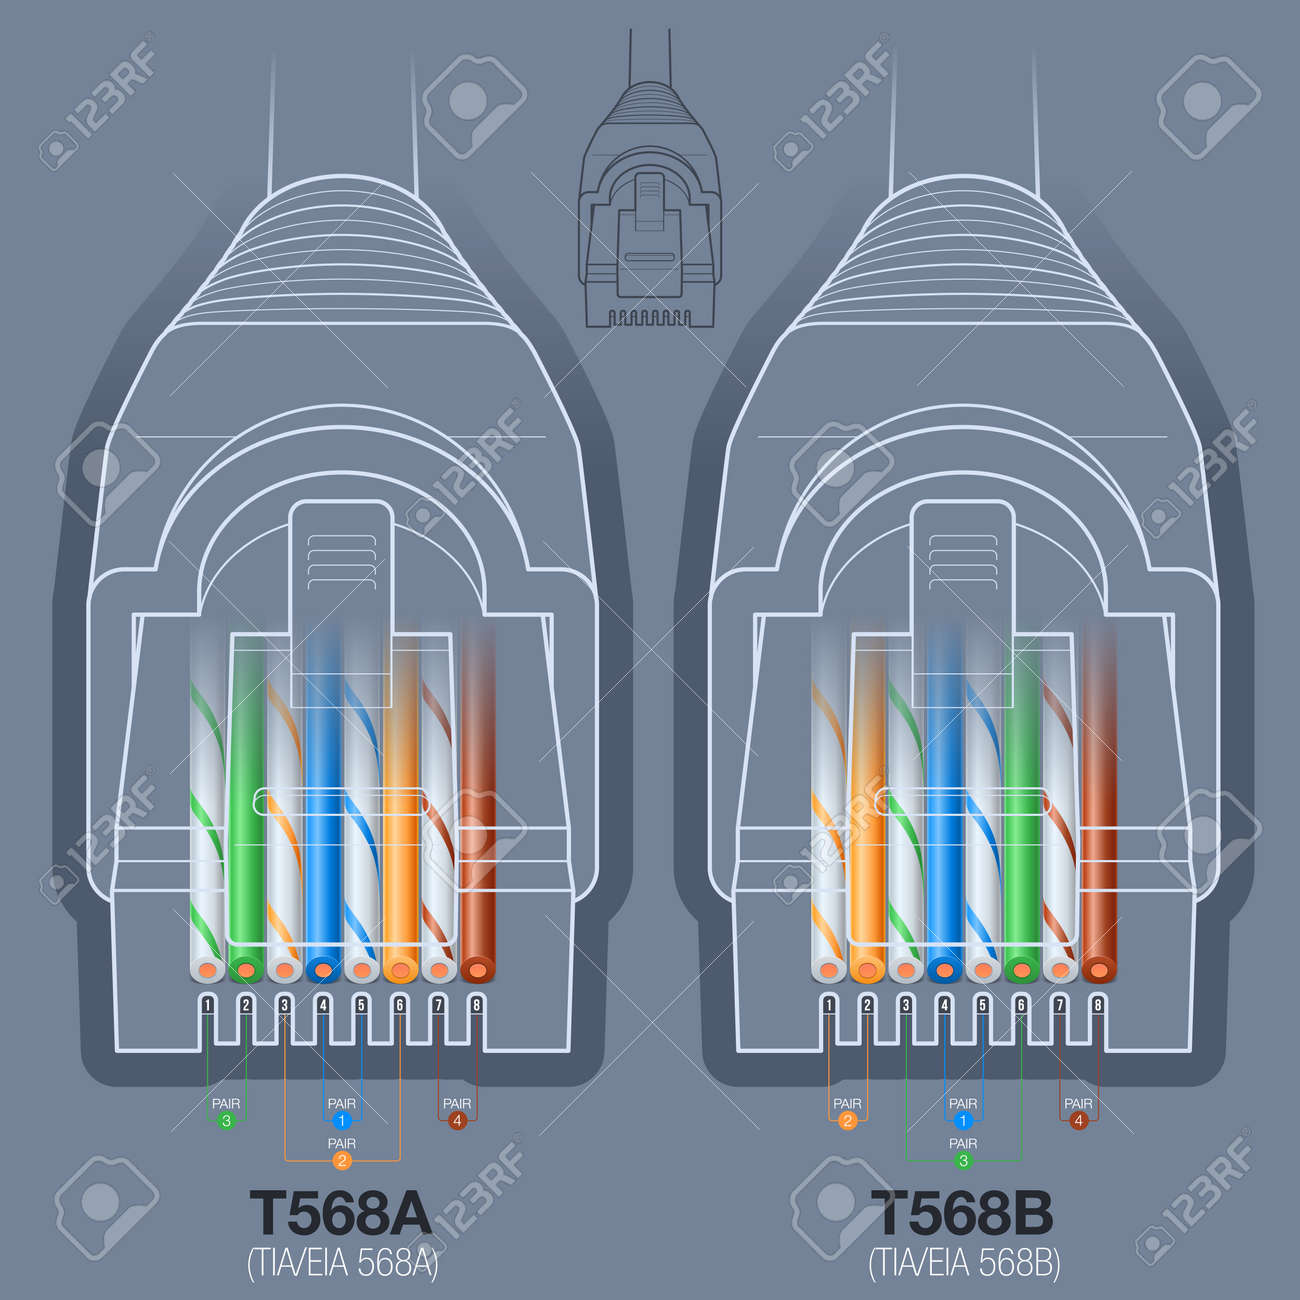 Schema Cablaggio Lan : Rj45 network cable connector t568a t568b wiring diagram royalty